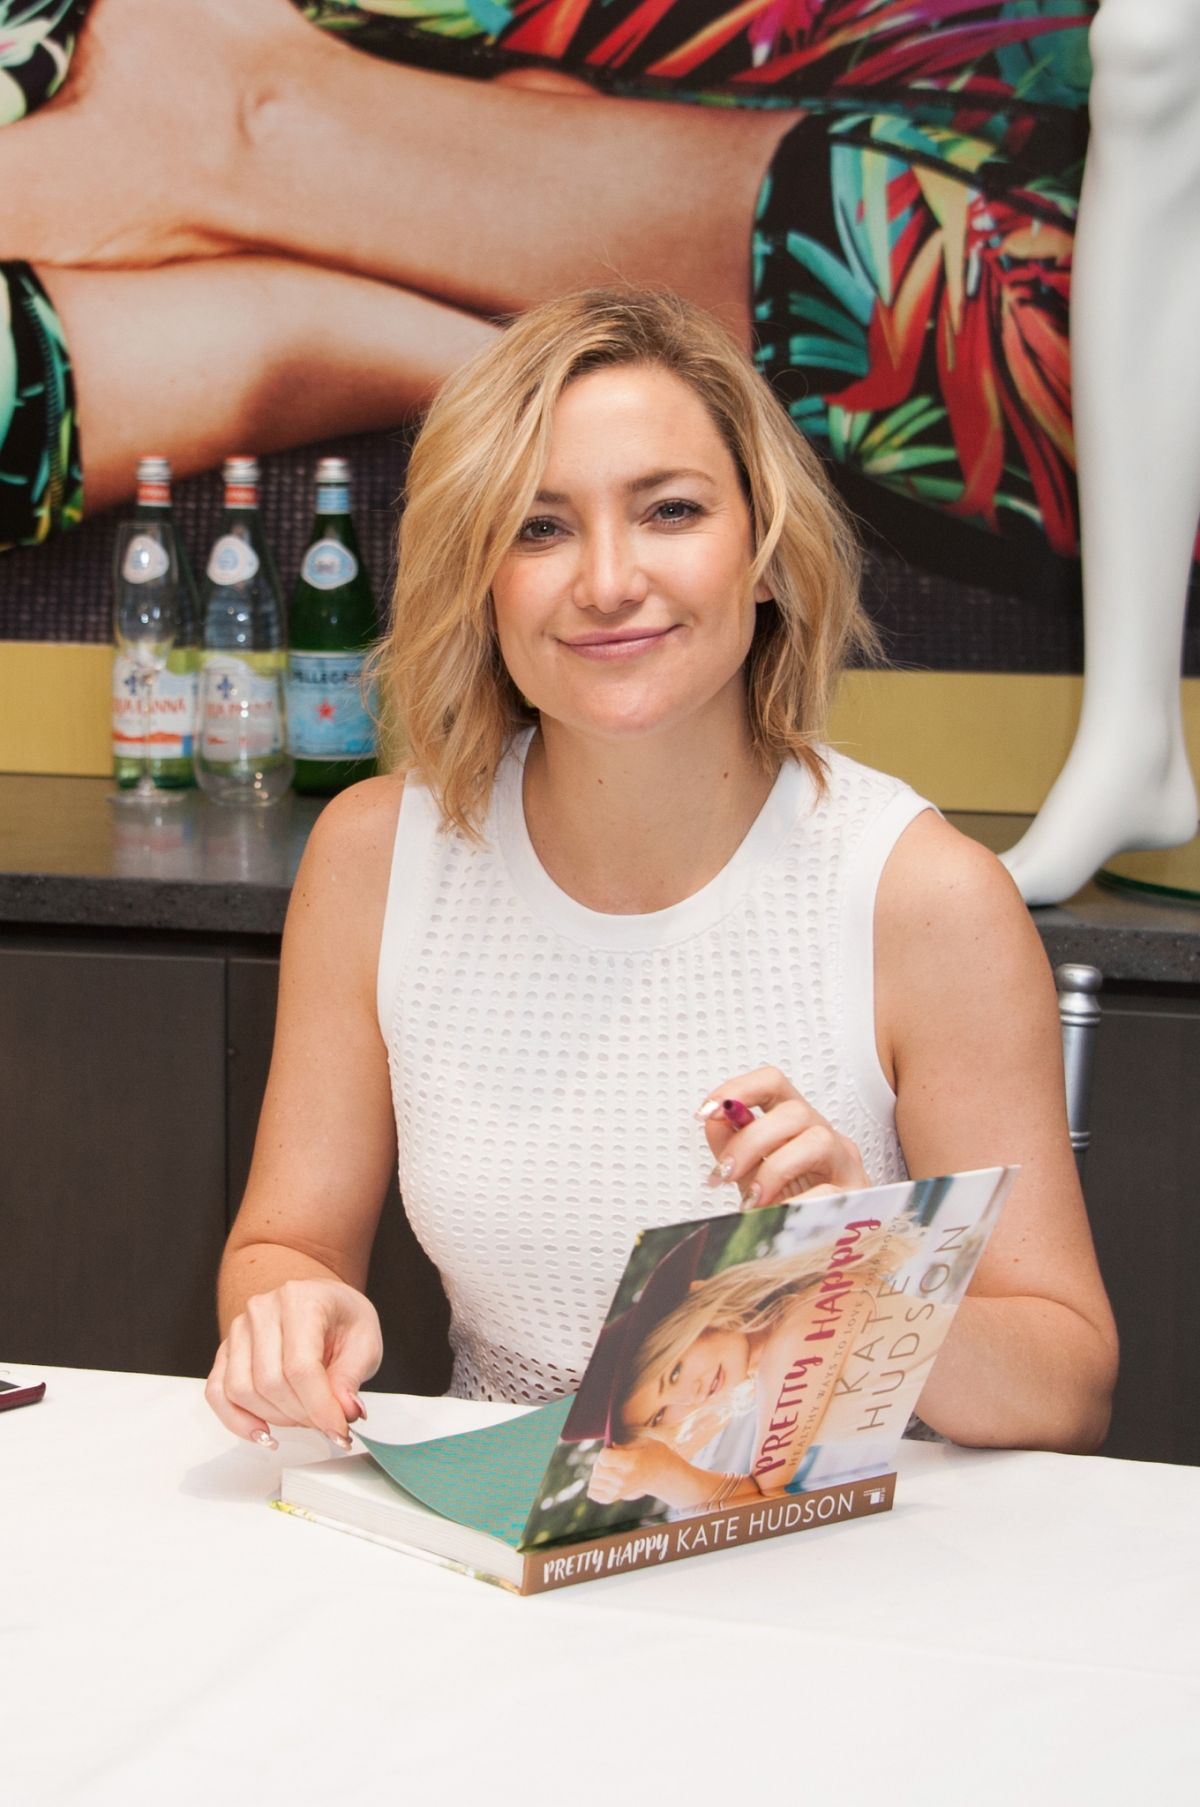 KATE HUDSON at \'Pretty Happy by Kate Hudson\' Book Signing in ...